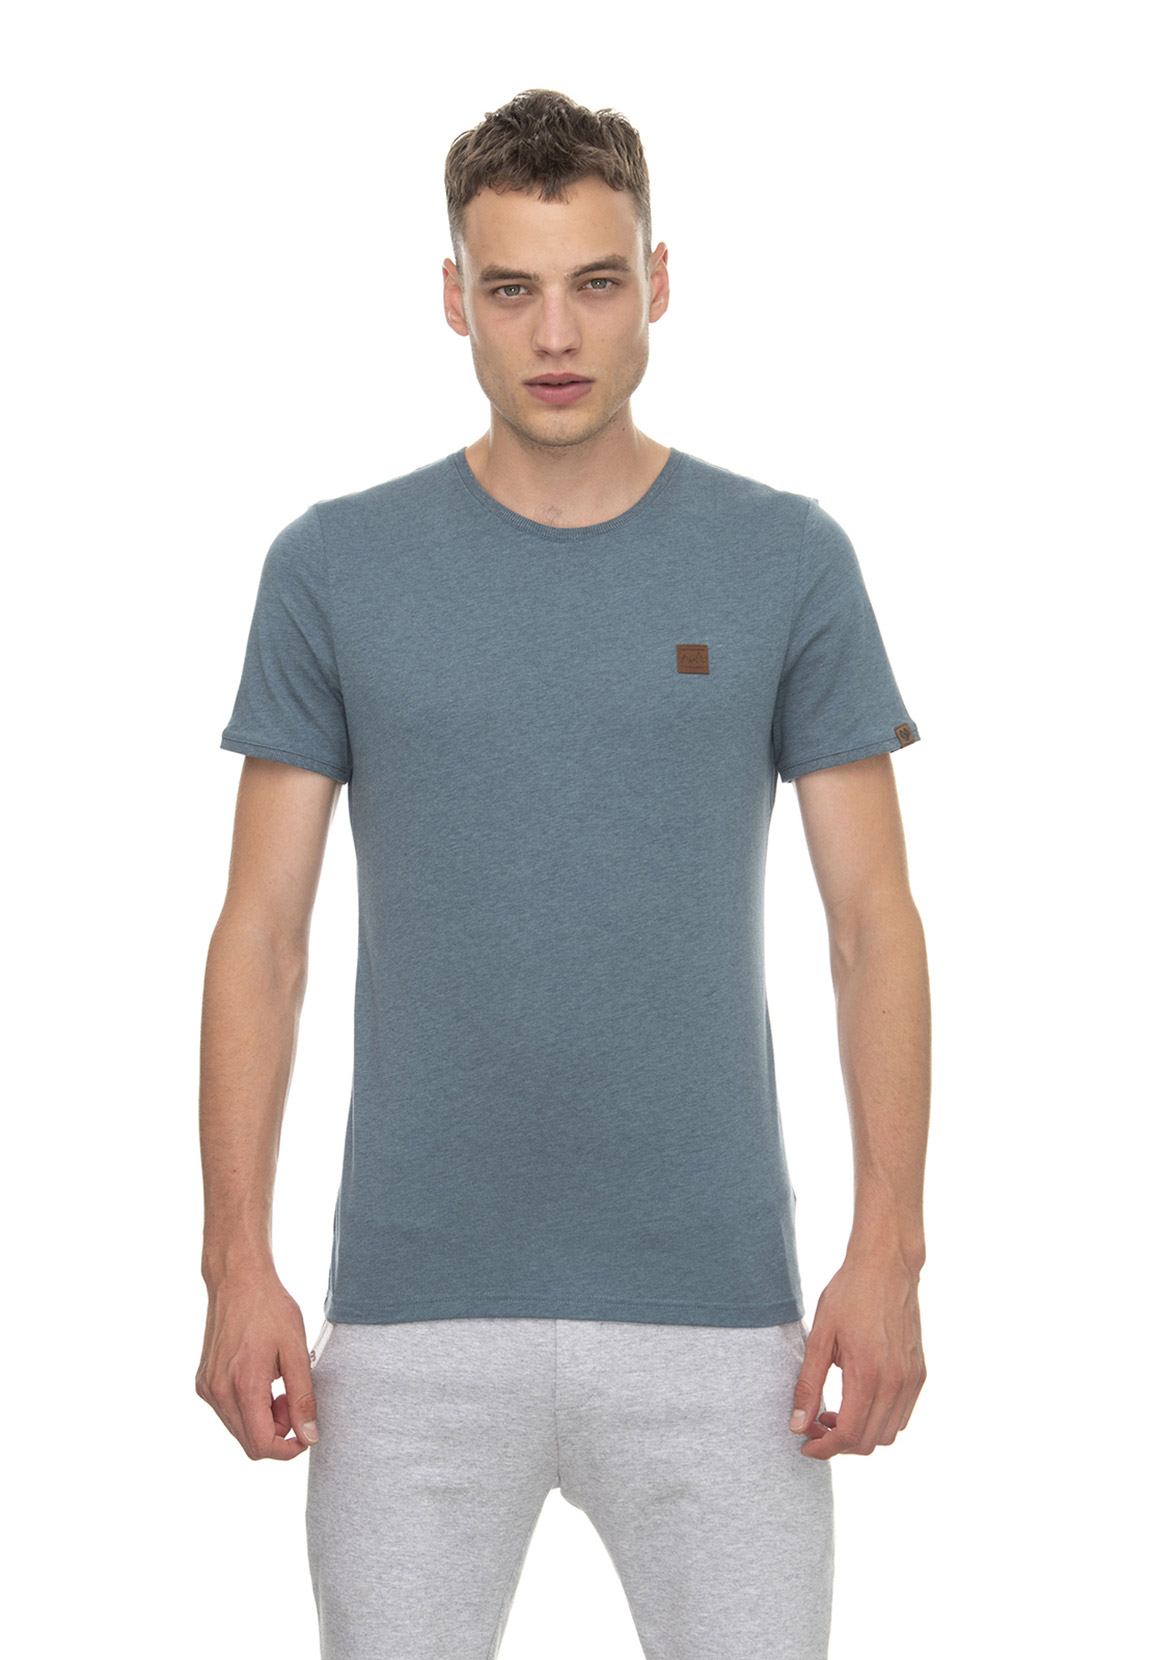 Ragwear T-Shirt Herren GRADY 2012-15001 Denim Blue 2010